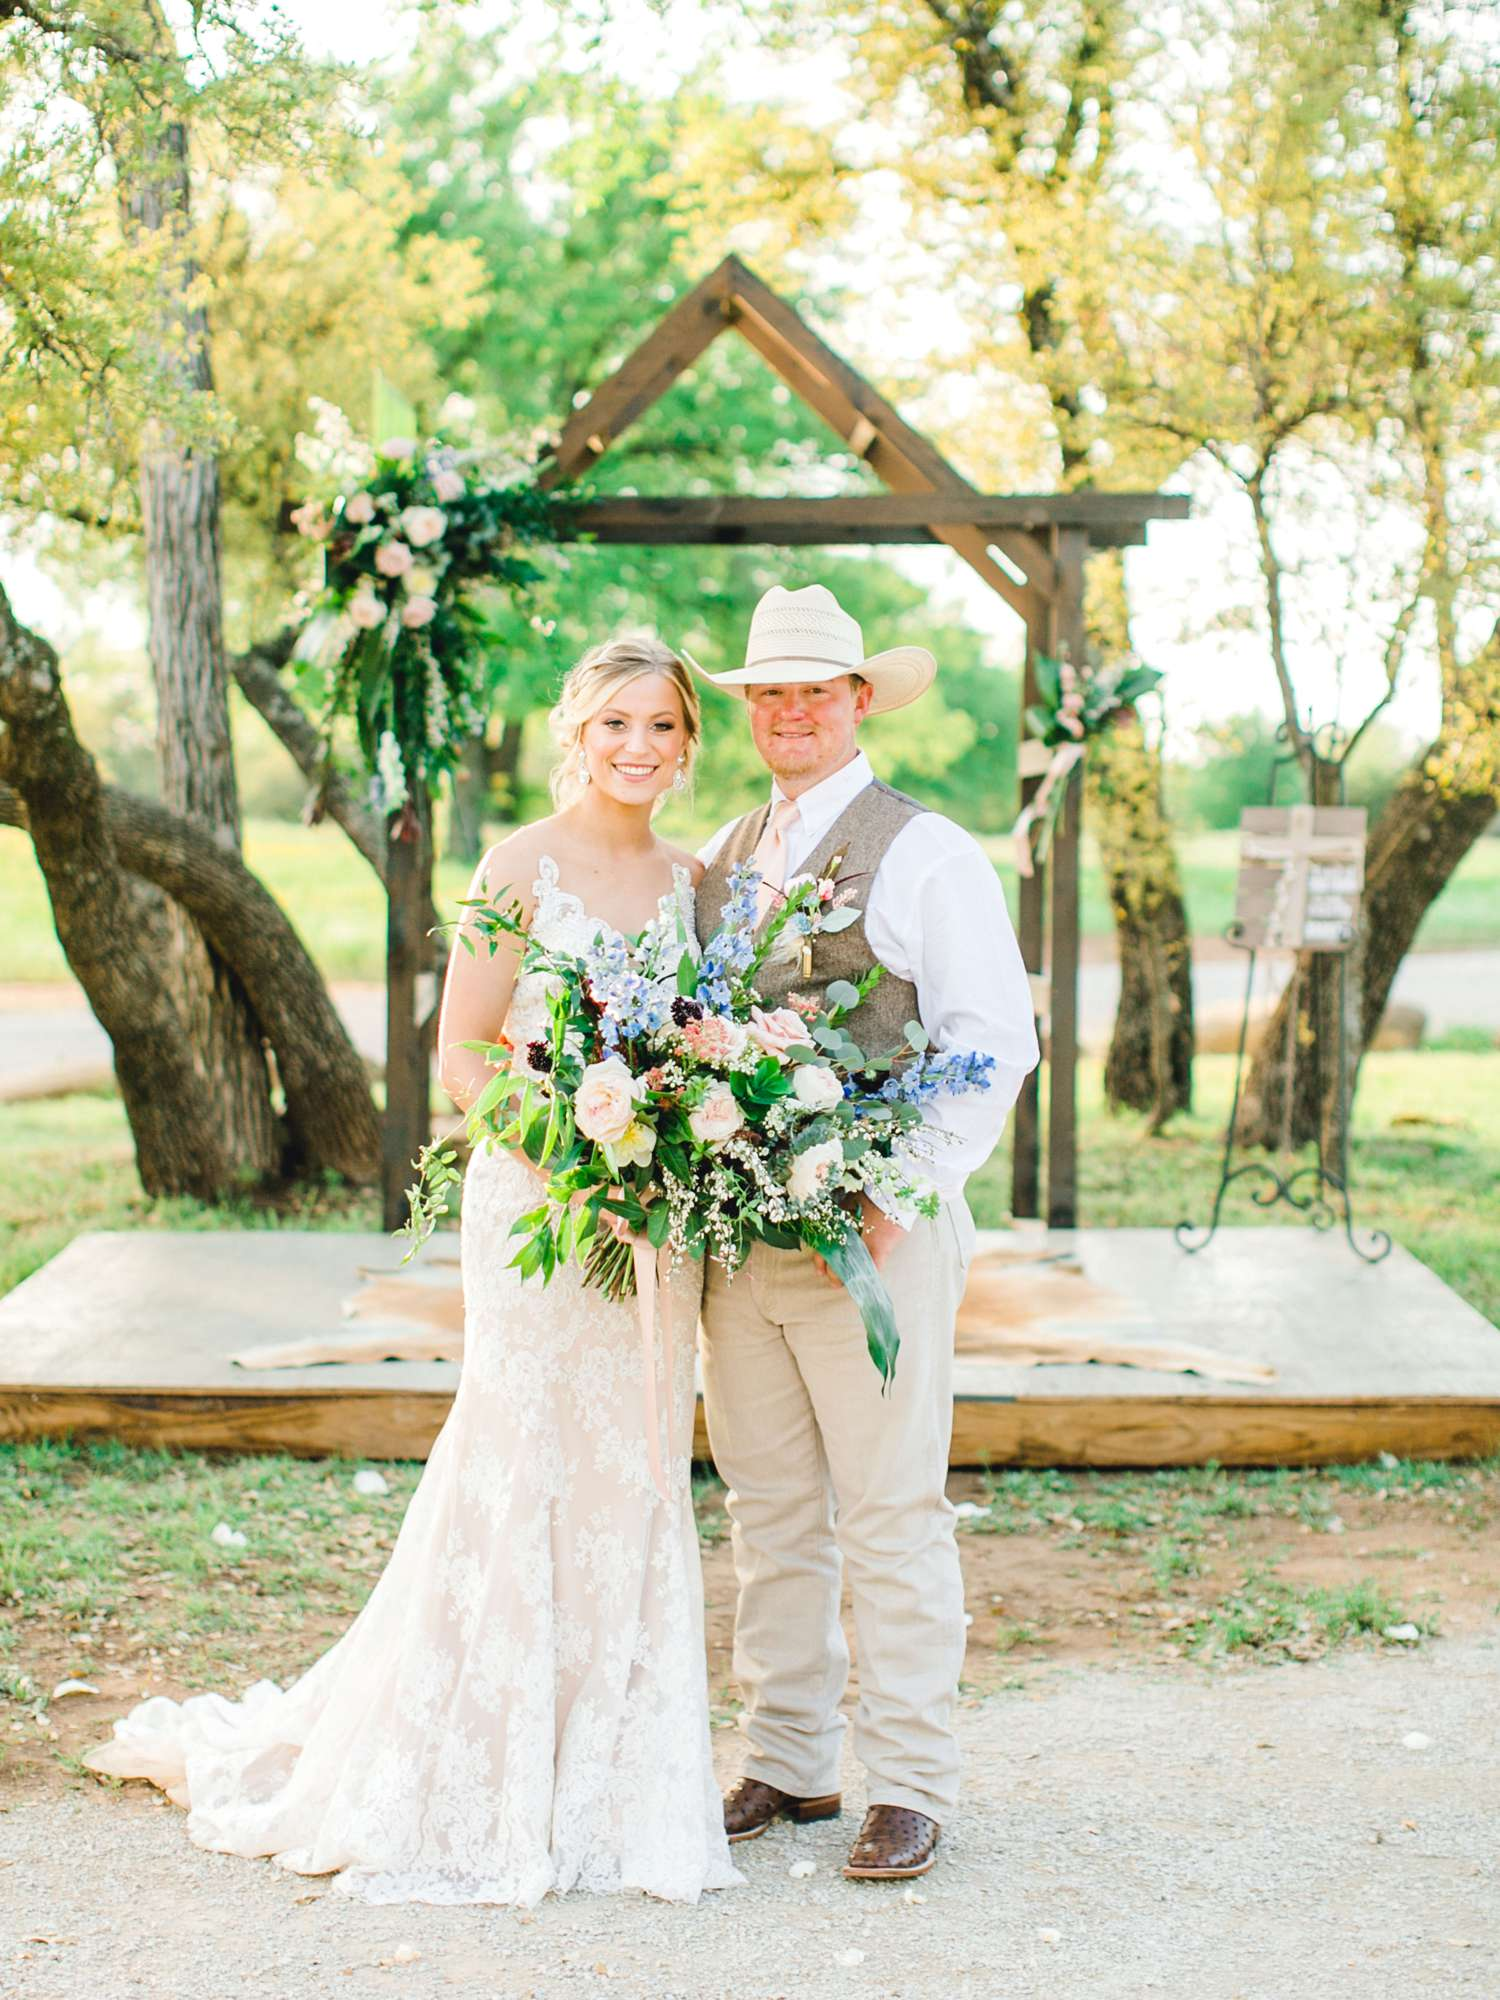 SARAH+TREVOR+BADGETT+SPARROW+CREEK+GRAHAM+TEXAS+ALLEEJ+WEDDINGS_0083.jpg